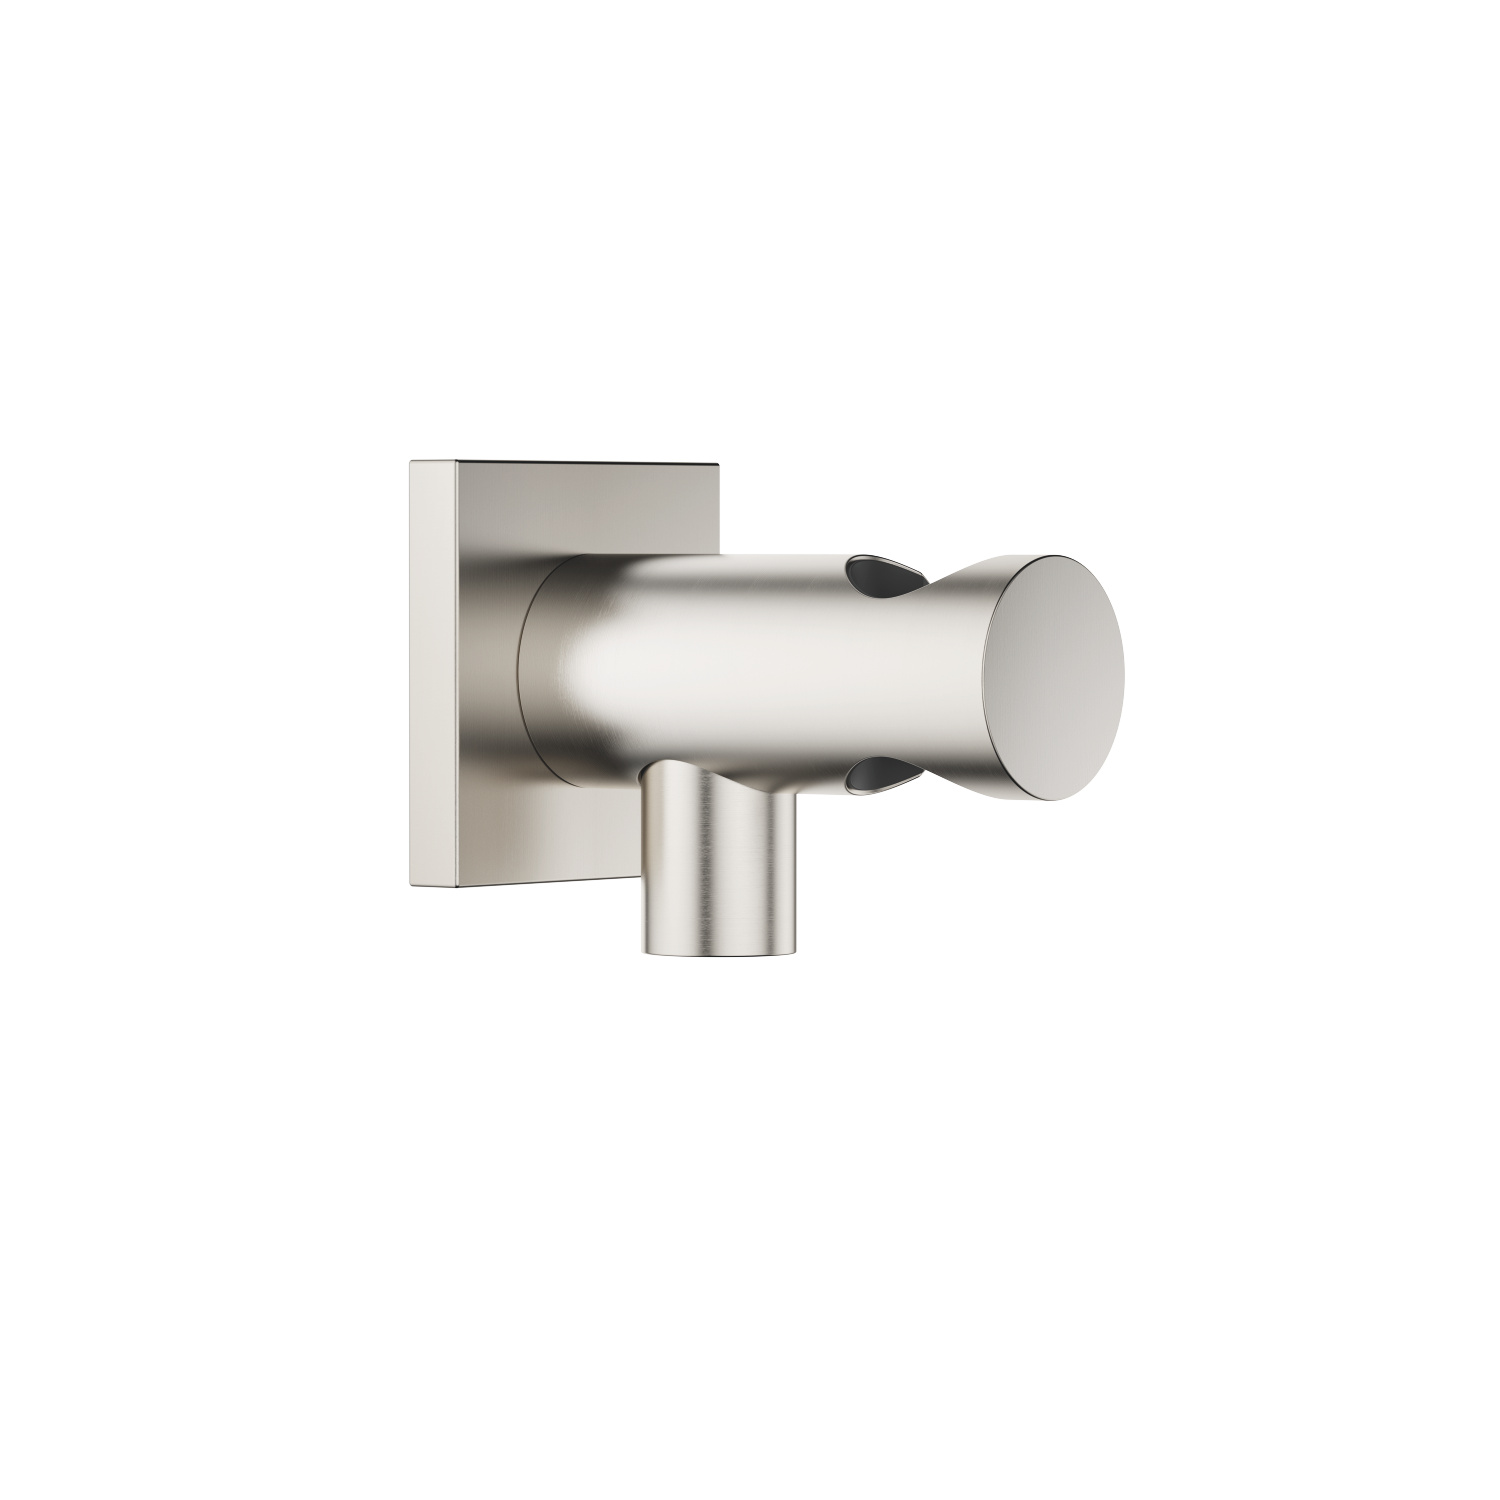 Wall elbow with integrated wall bracket - platinum matte